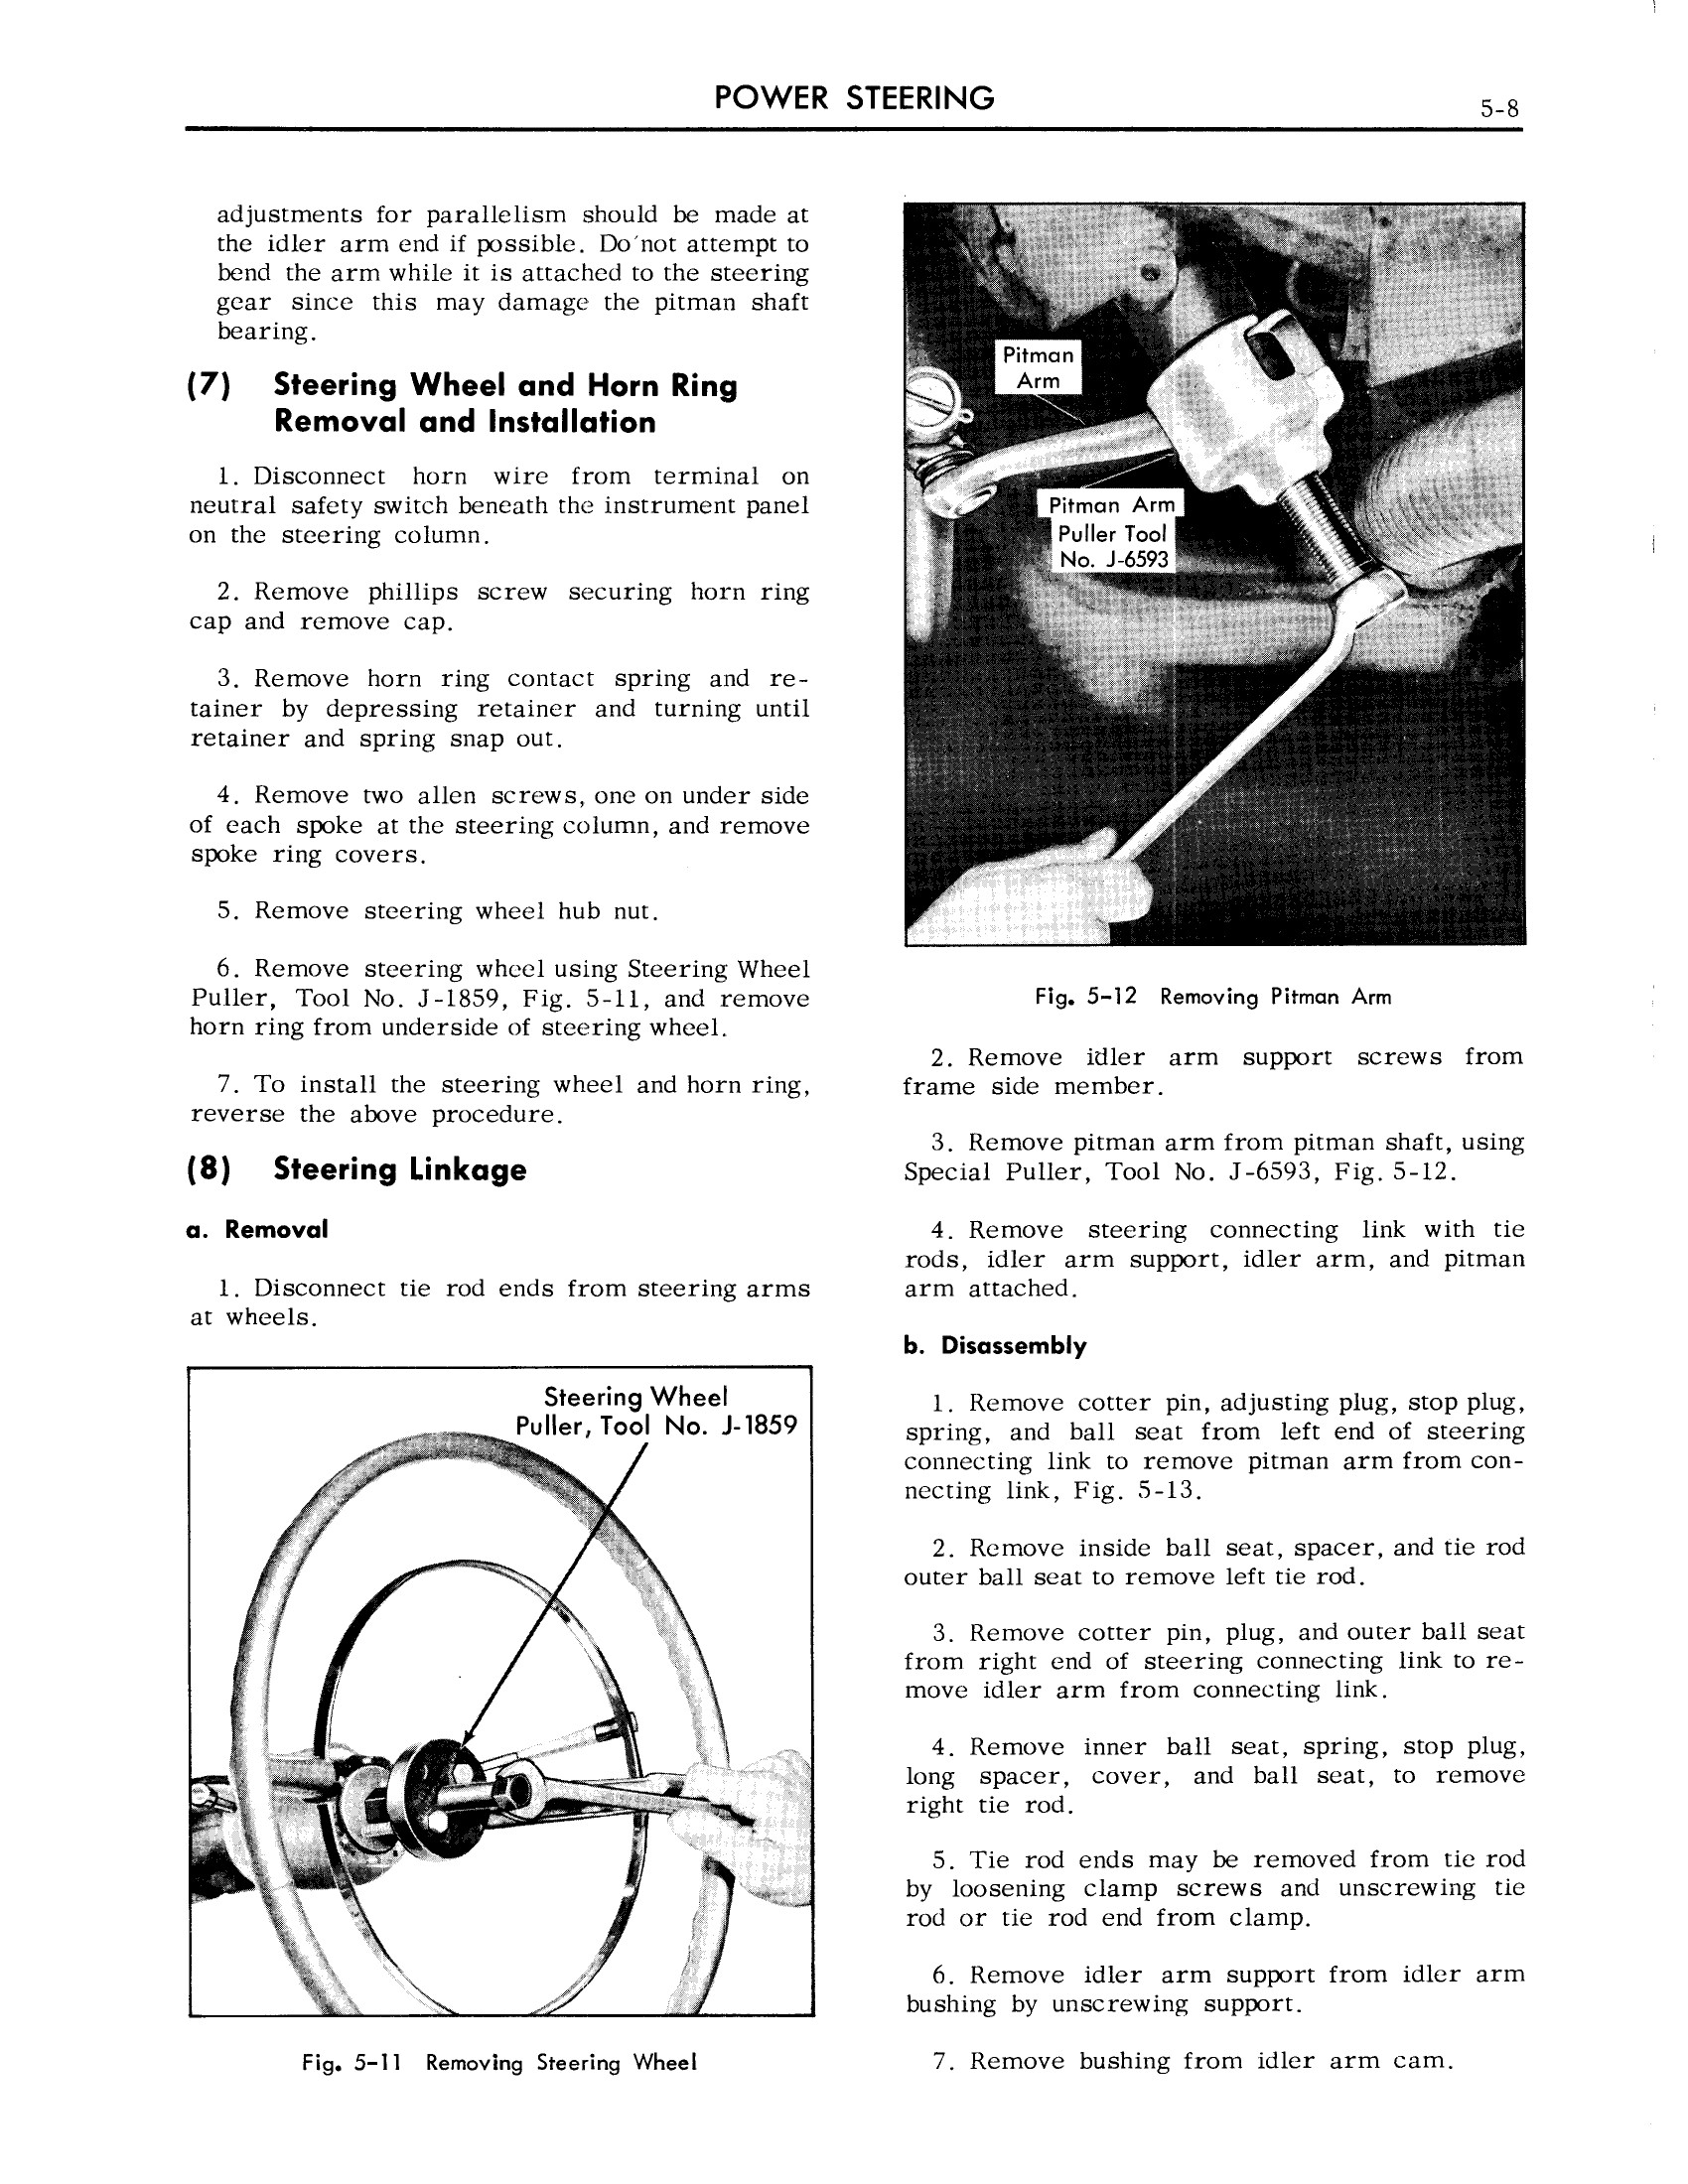 1959 Cadillac Shop Manual- Power Steering Page 8 of 31